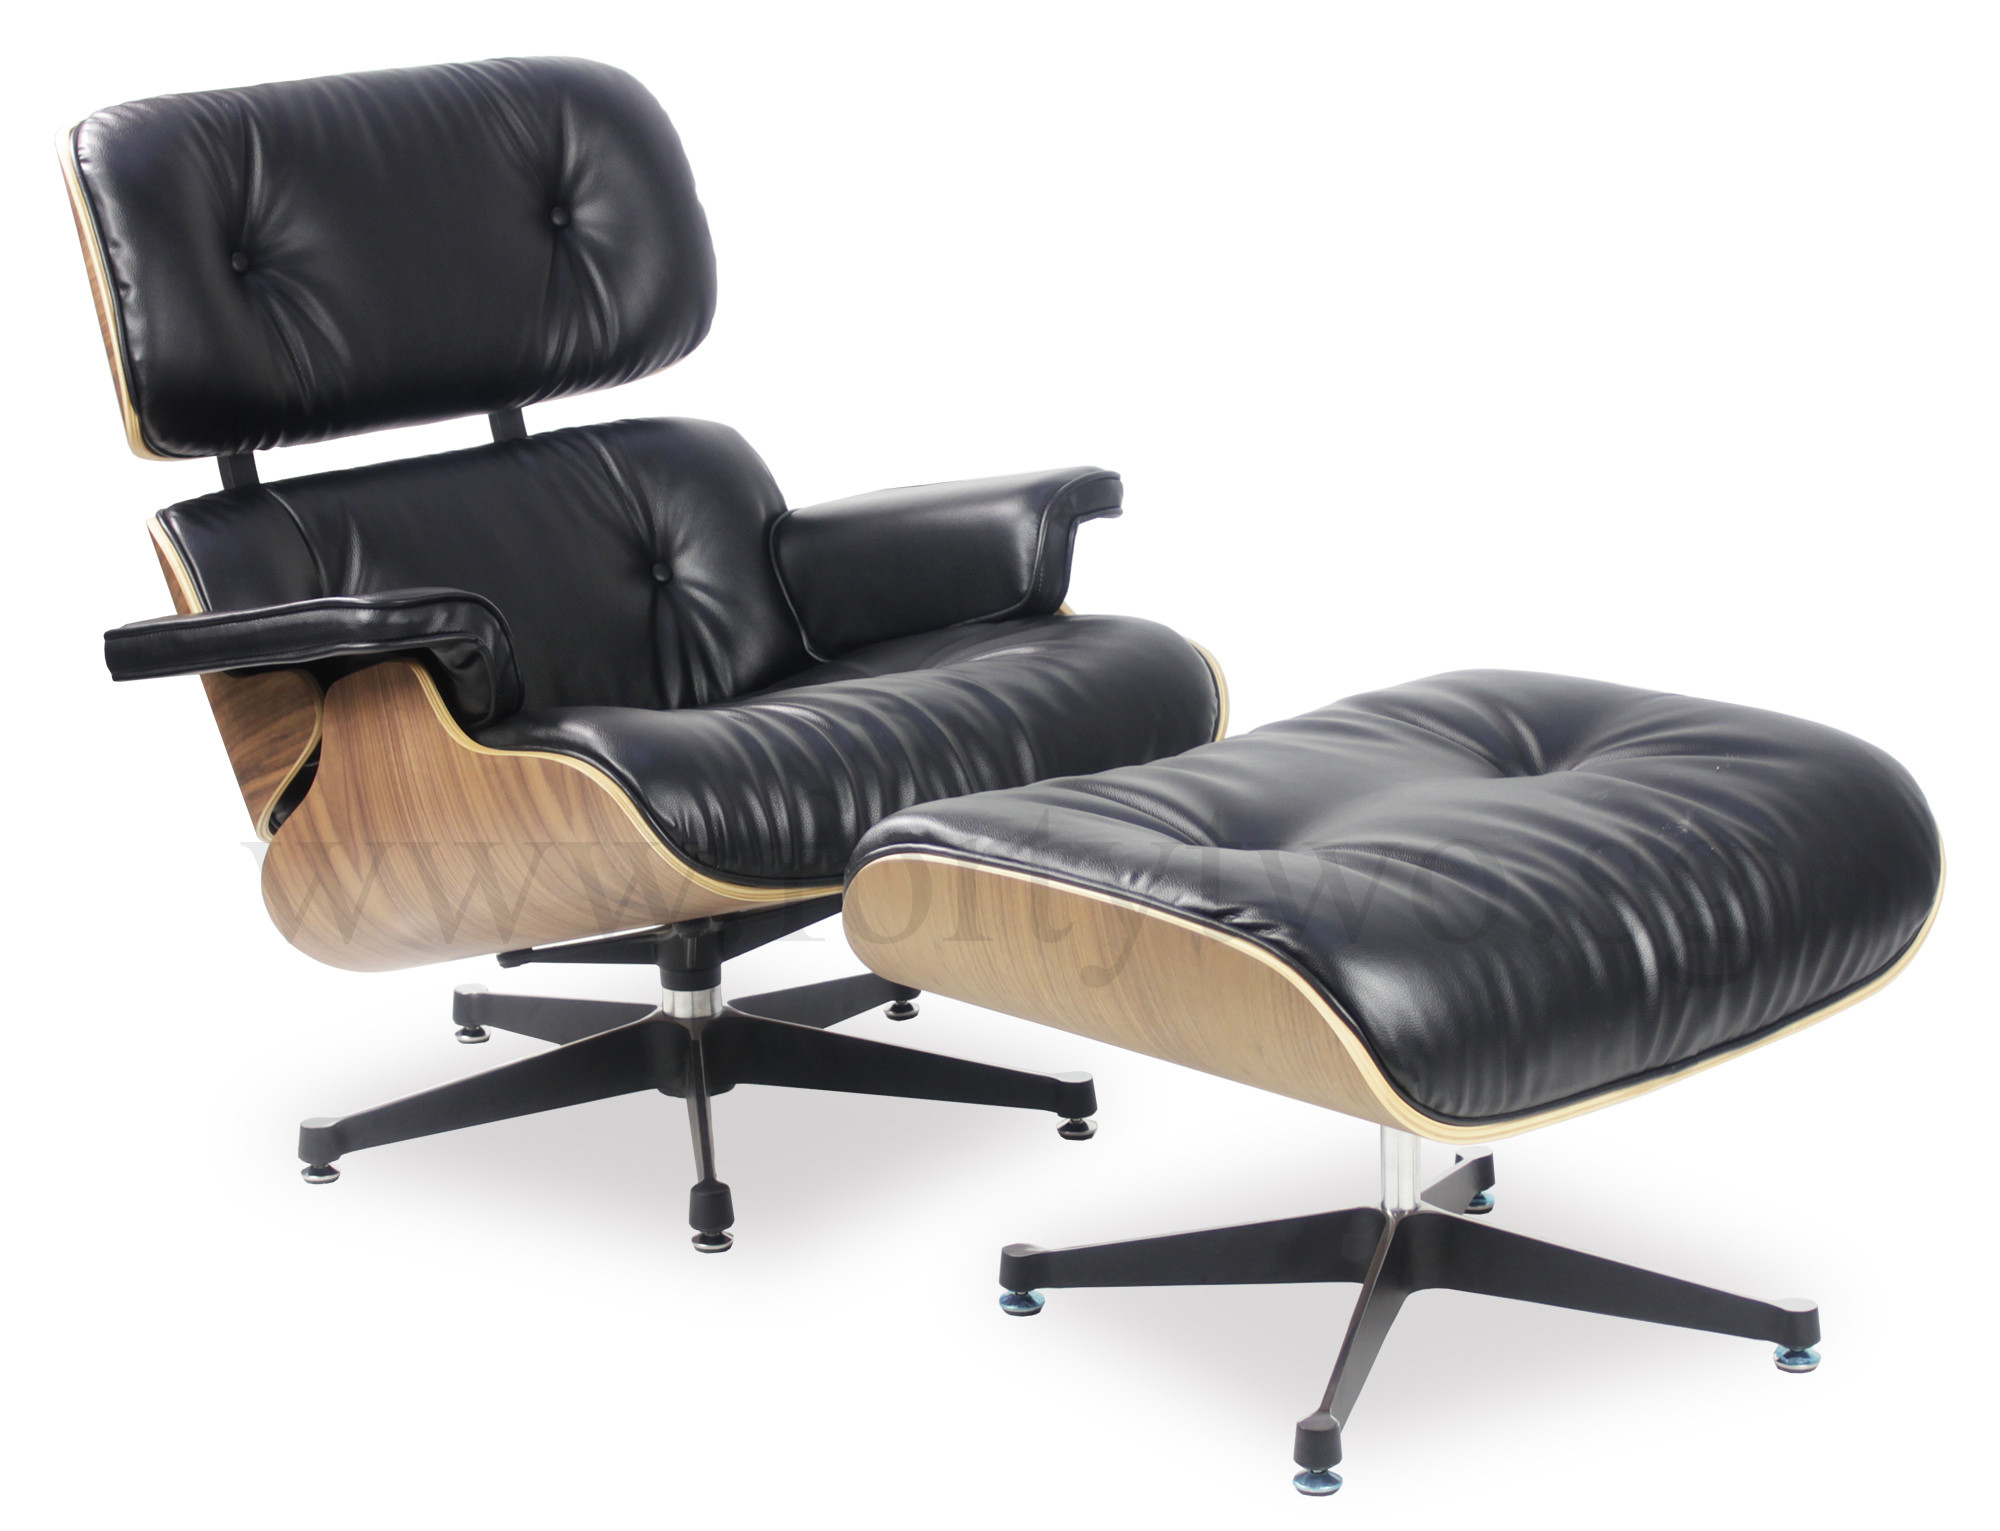 Eames Replica Lounge Chair (Black Leather) | Furniture & Home Décor ...